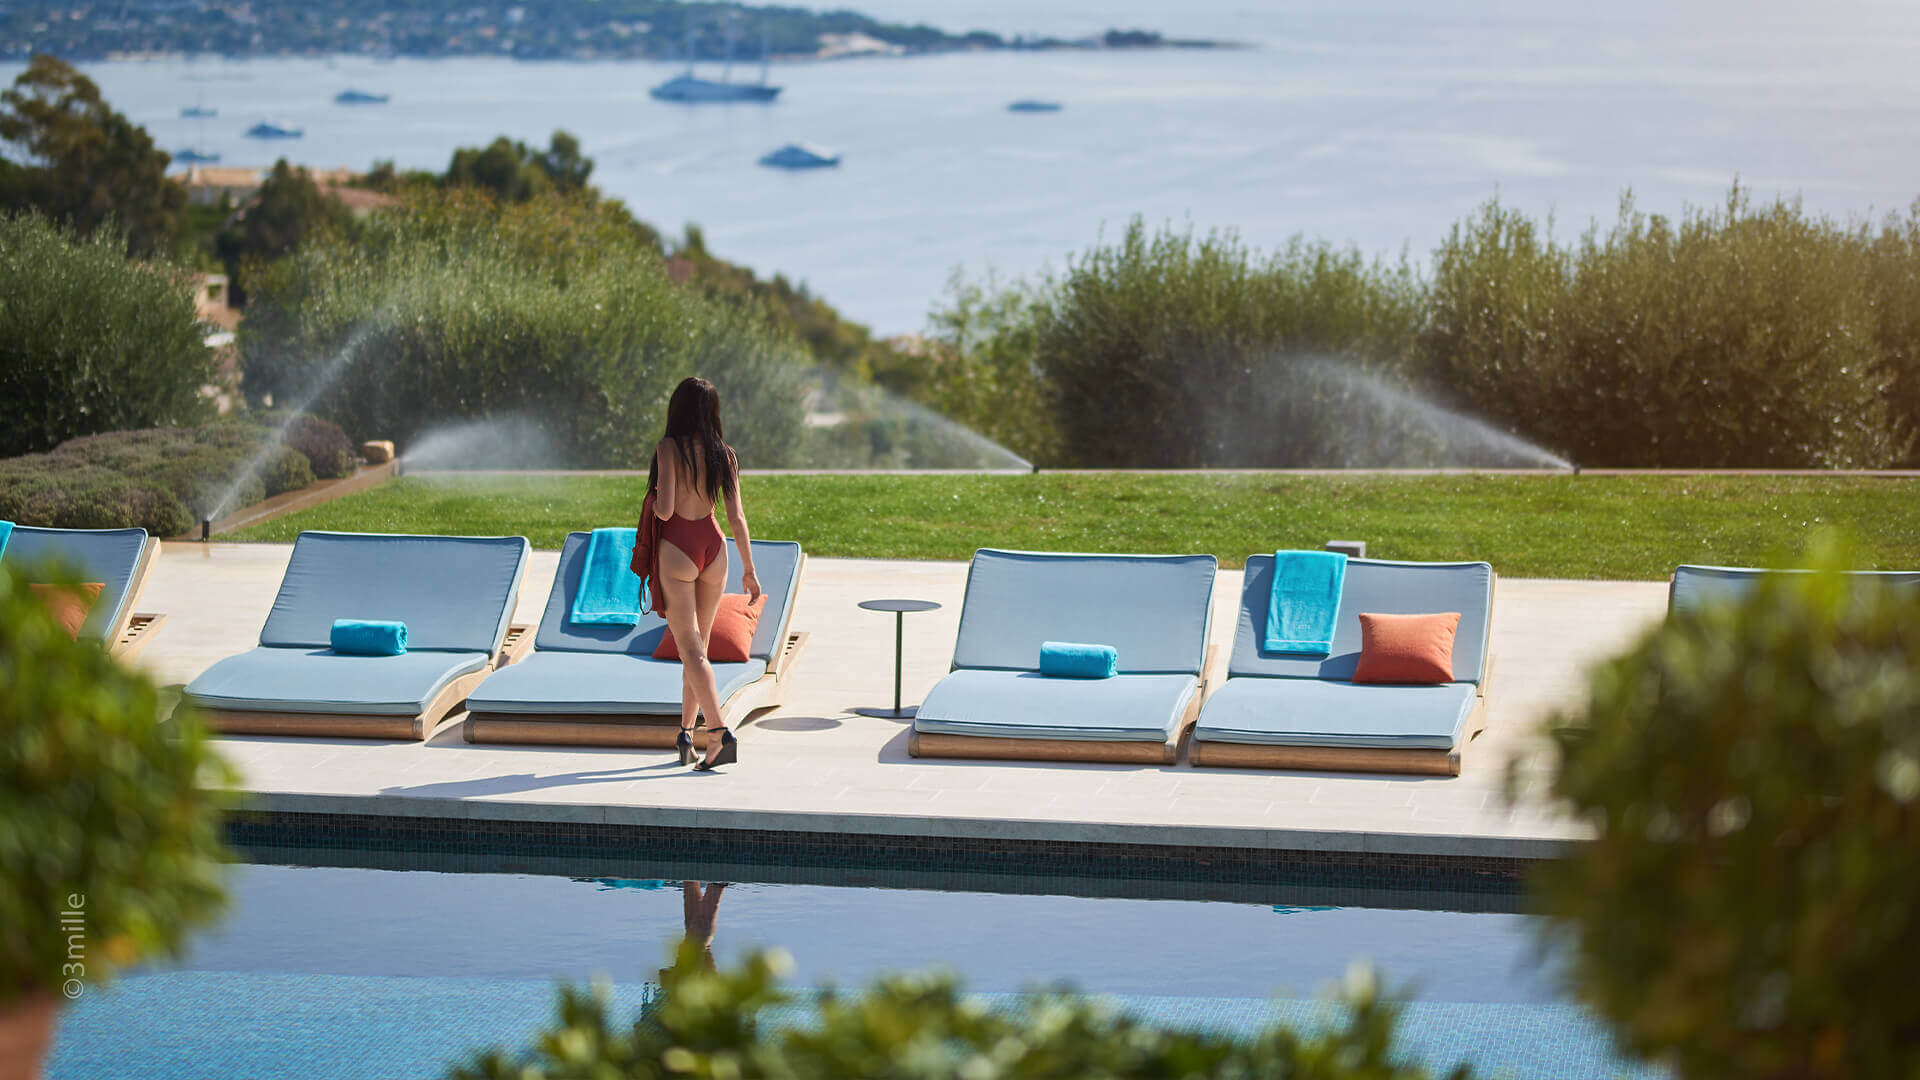 Super Cannes Luxury beach chairs and swimming pool